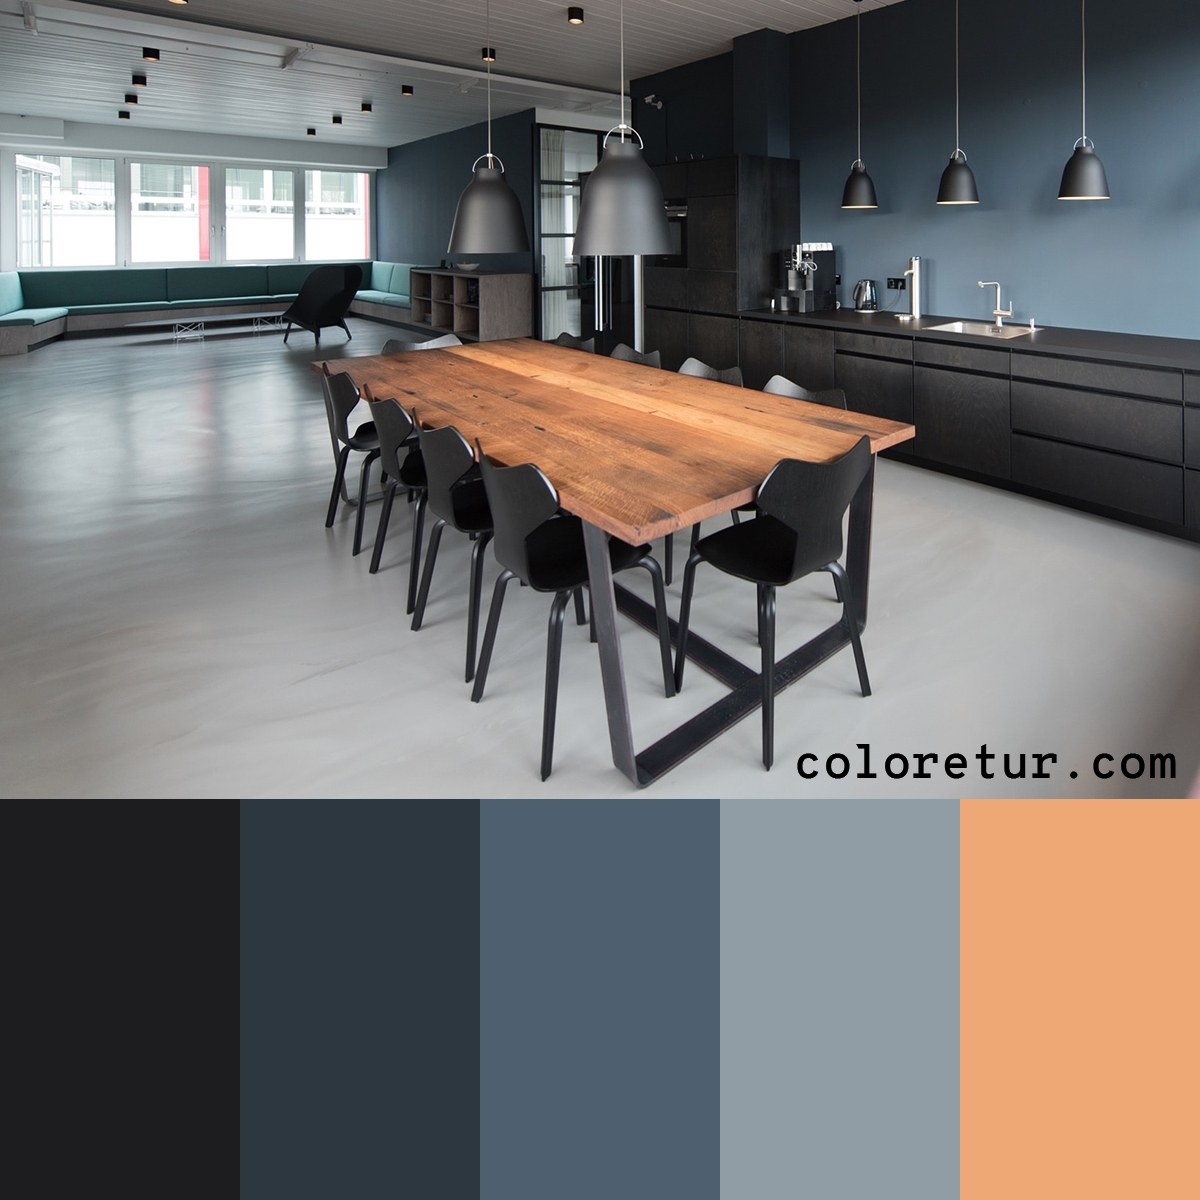 A cold, industrial palette, with warm accents pulled from natural timbers.